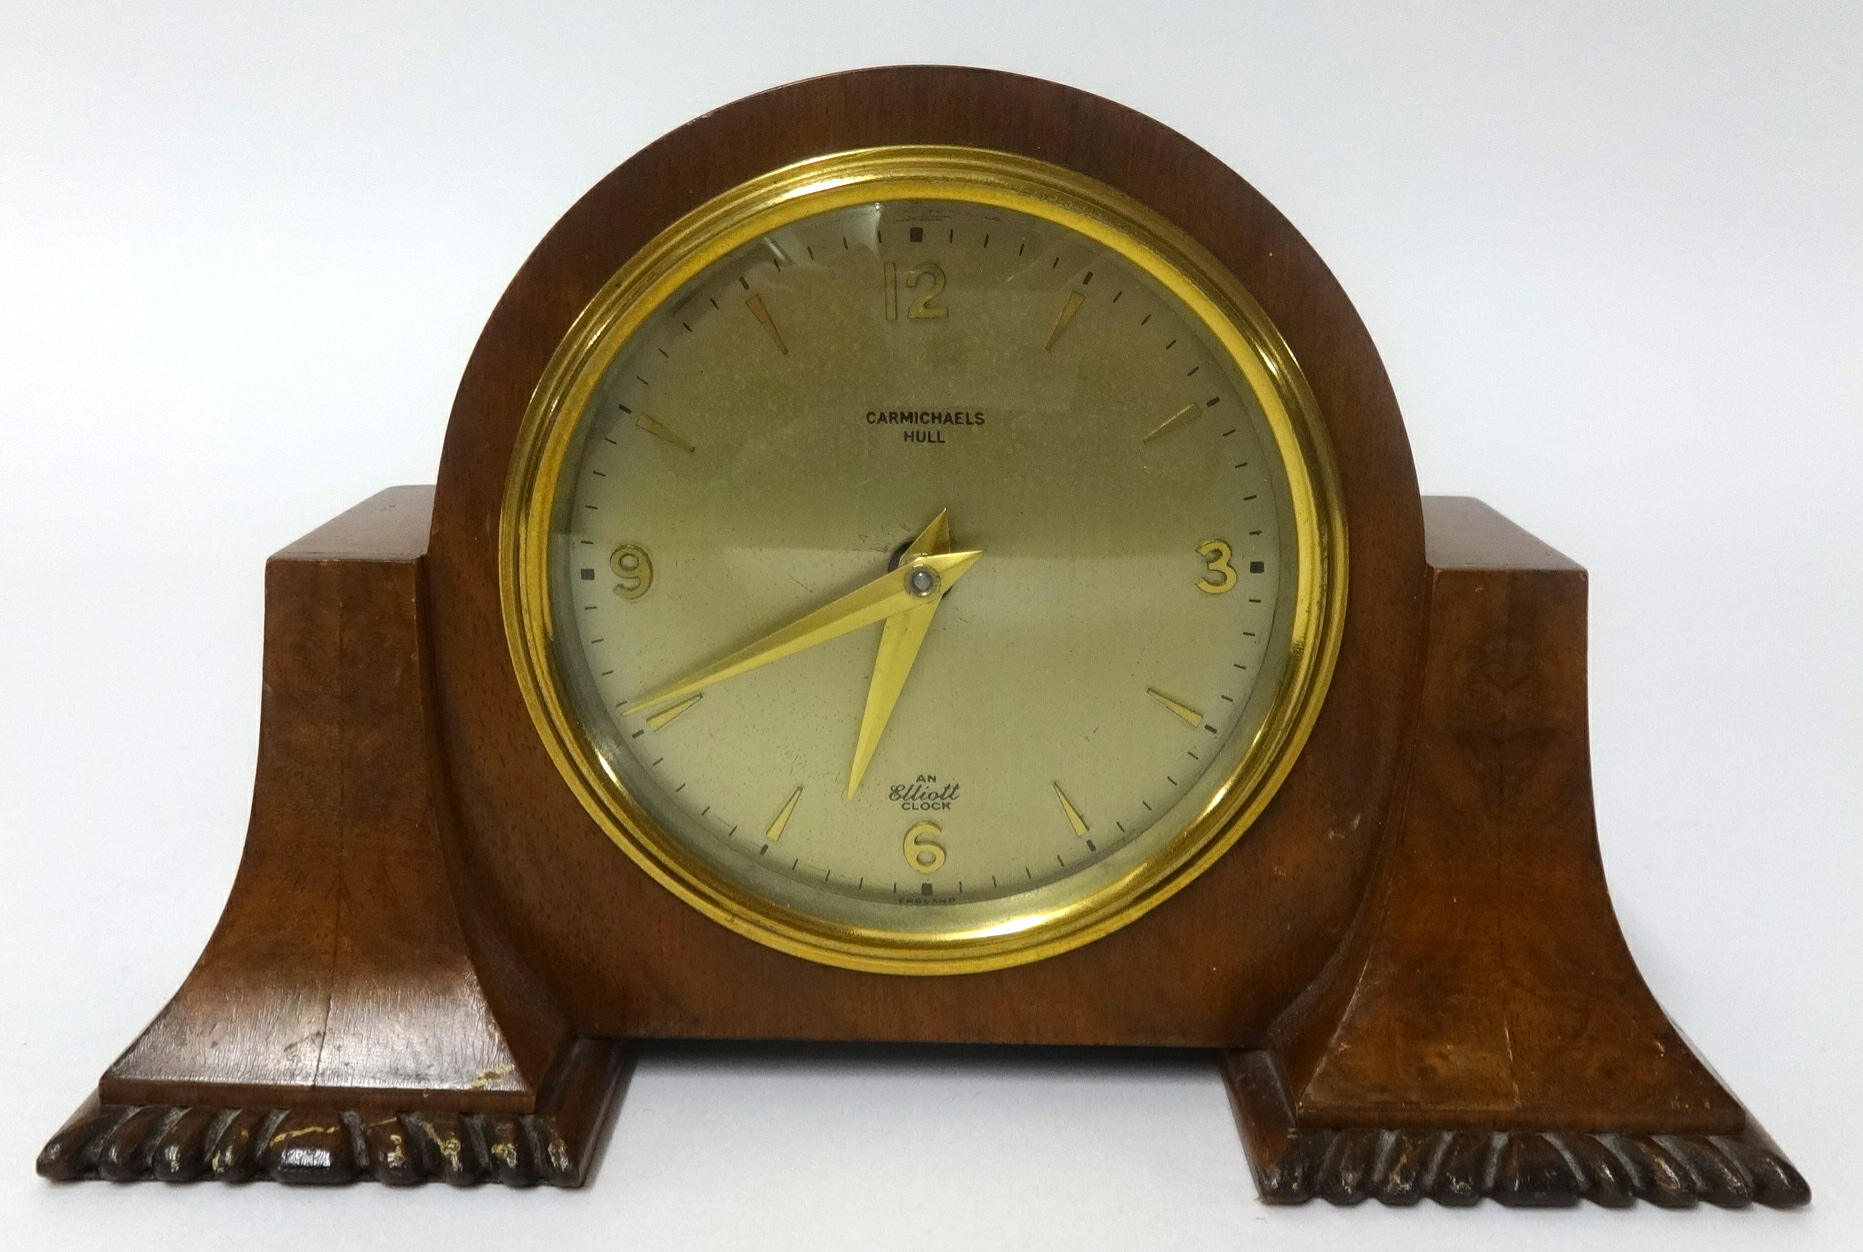 Lot 056 - An Elliott walnut cased mantel clock, inscribed 'Carmichael', height 12cm.